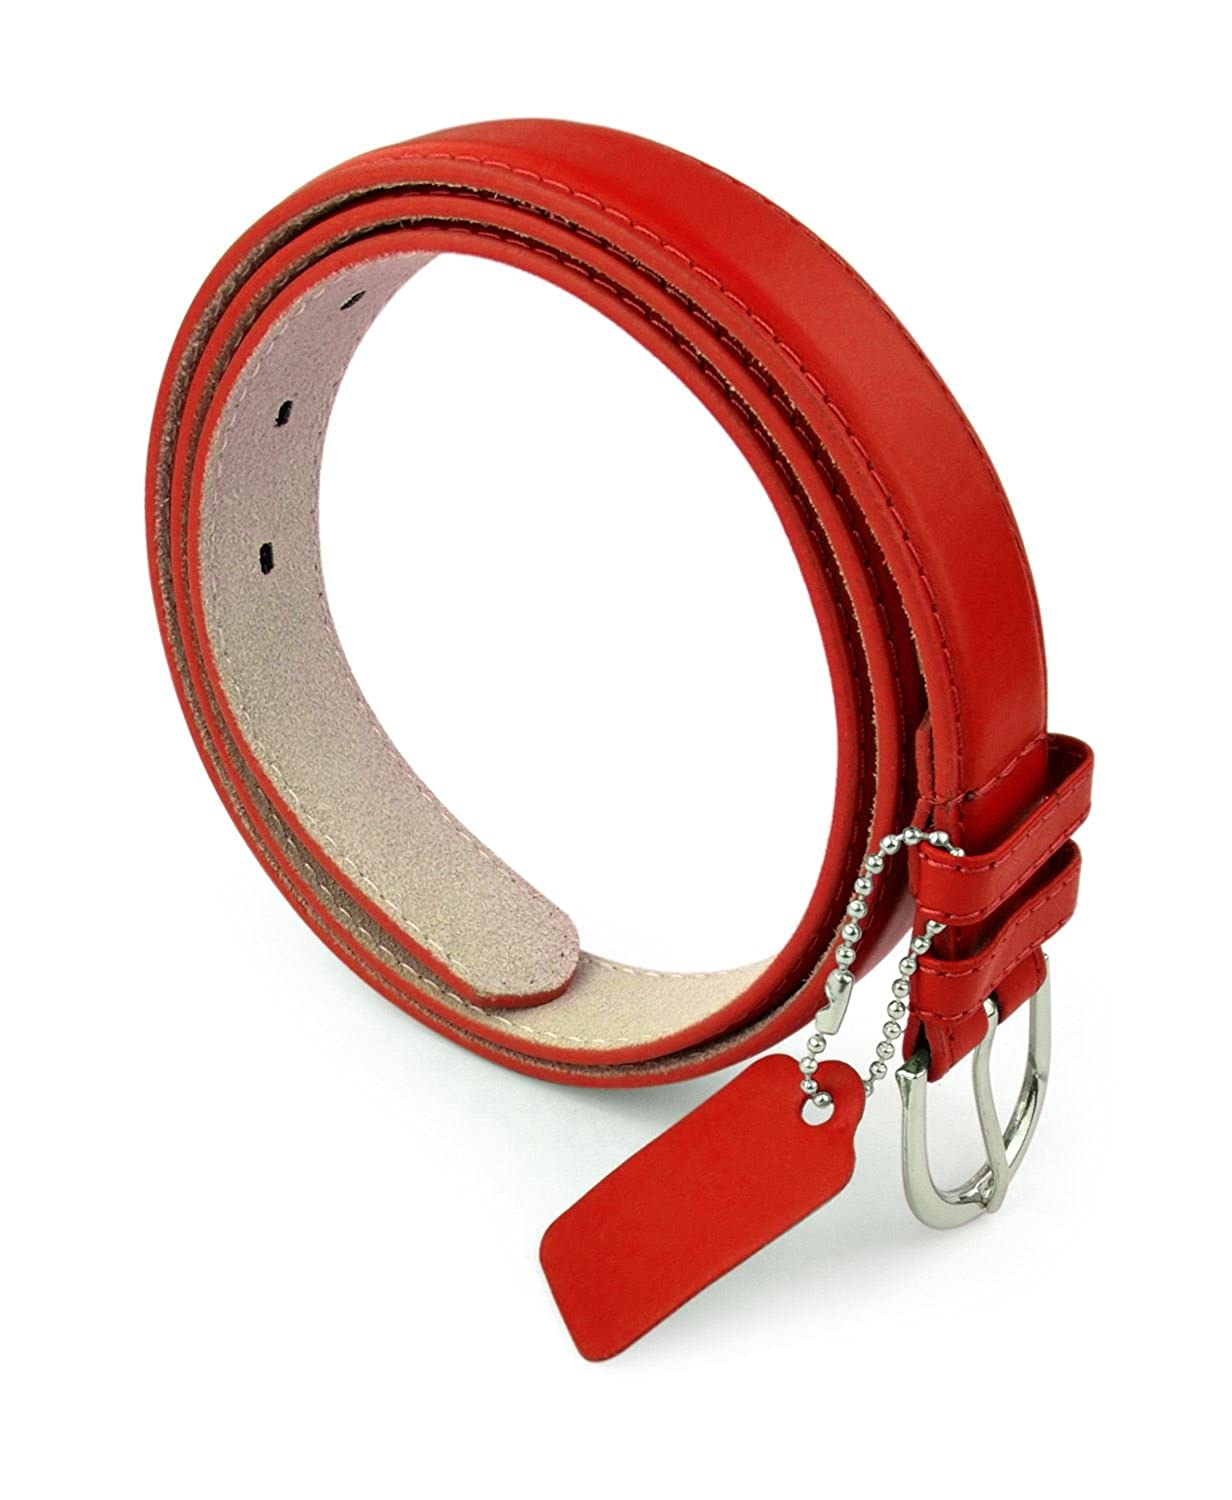 Belle Donne Women's 1-1/8 in Bonded Leather Belt With Metal Buckle